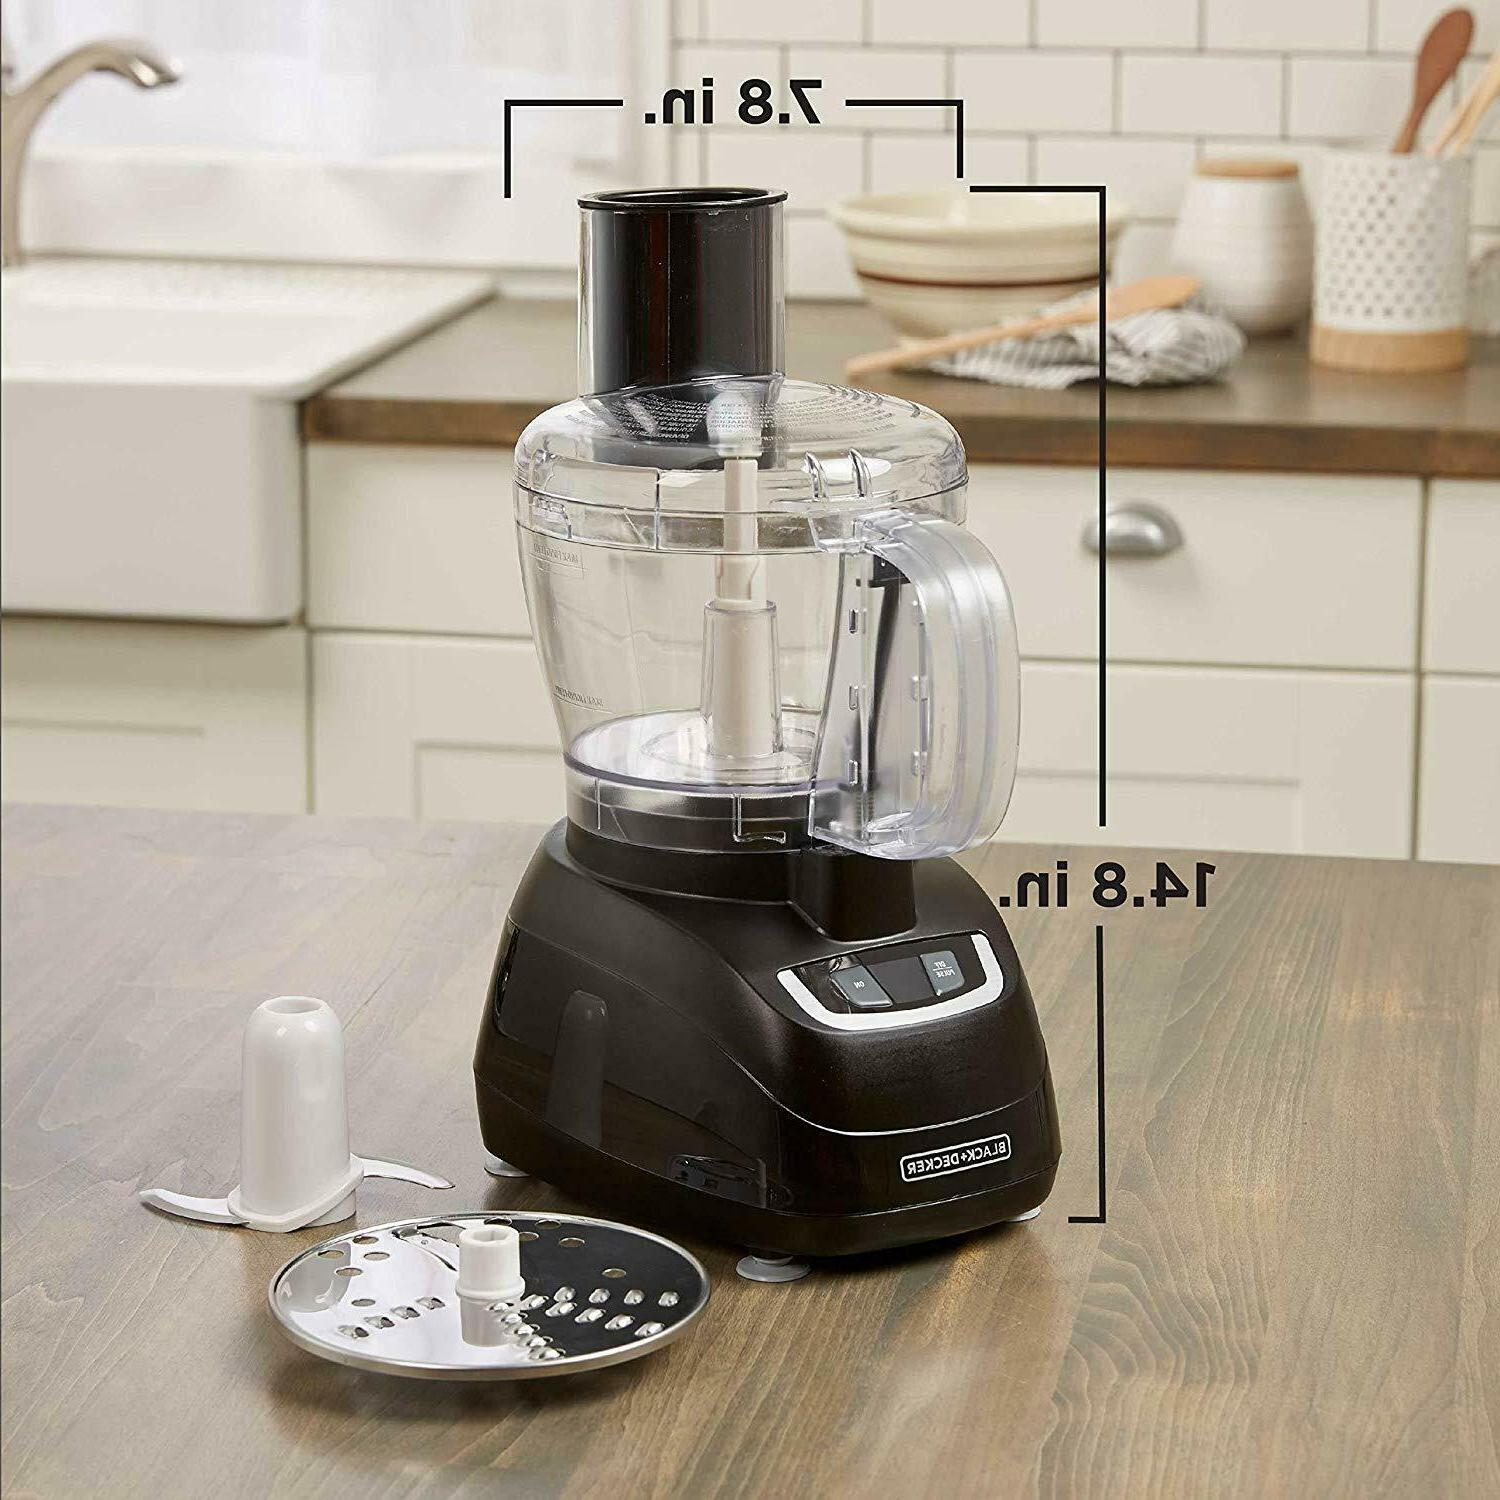 Black & Decker Cup black, Food Processor FP1600B